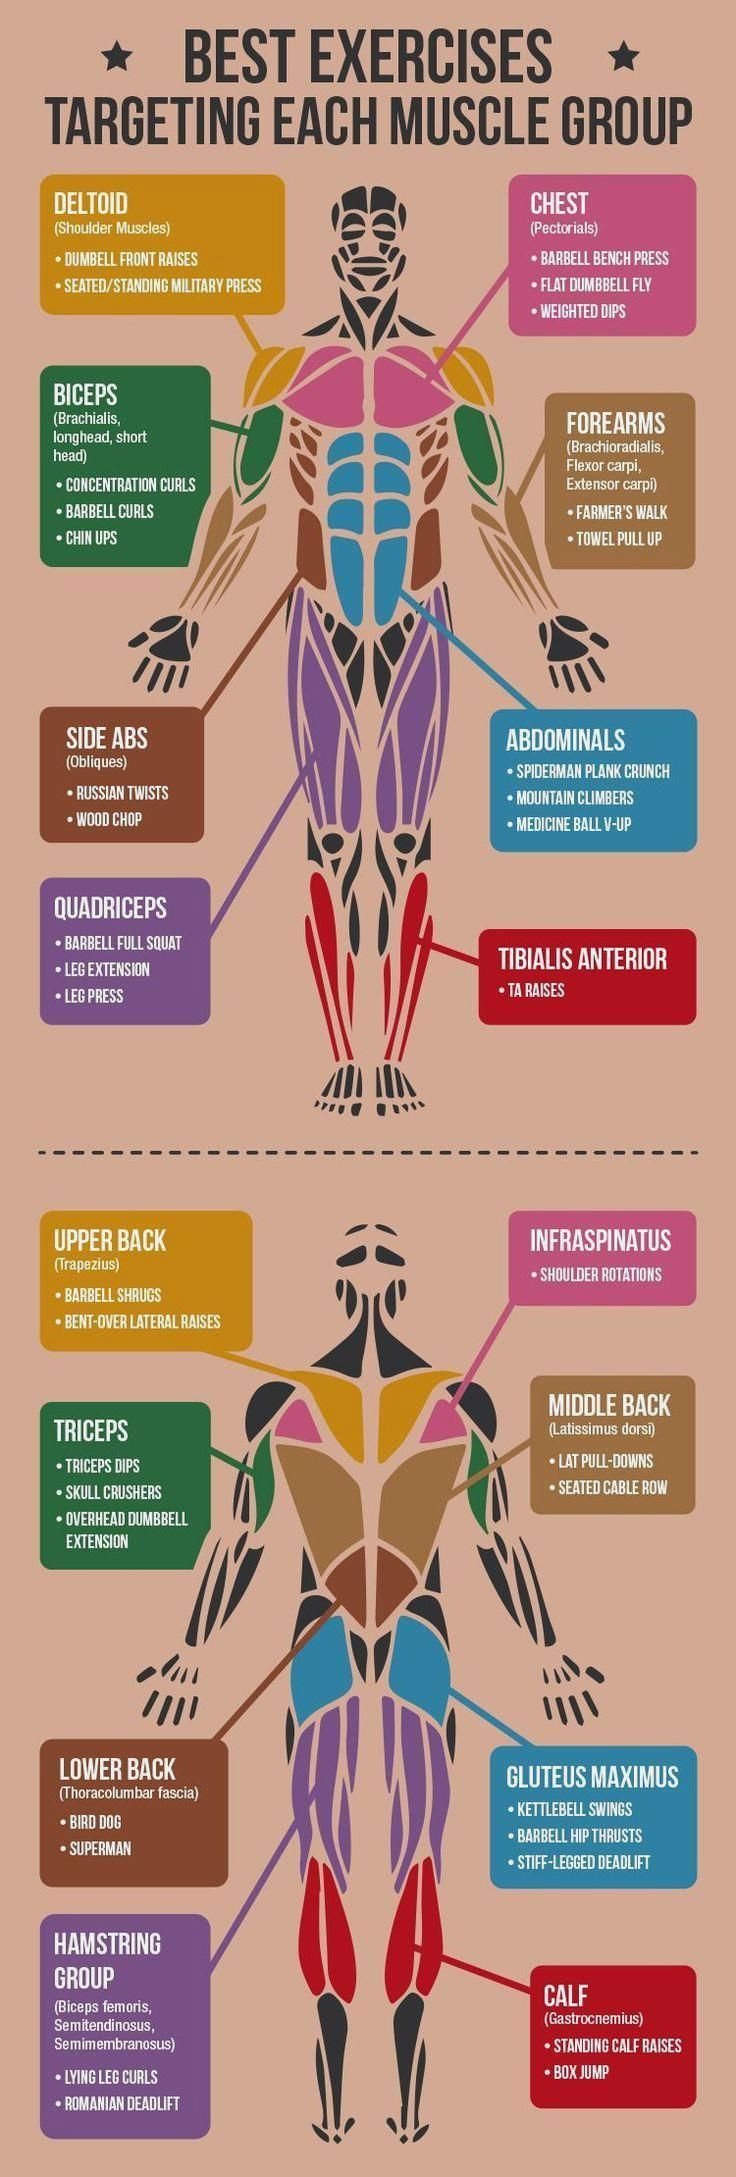 cool *CLICK FOR ALL EXERC *CLICK FOR ALL EXERCISES* Best Exercises Targeting Each Mu...